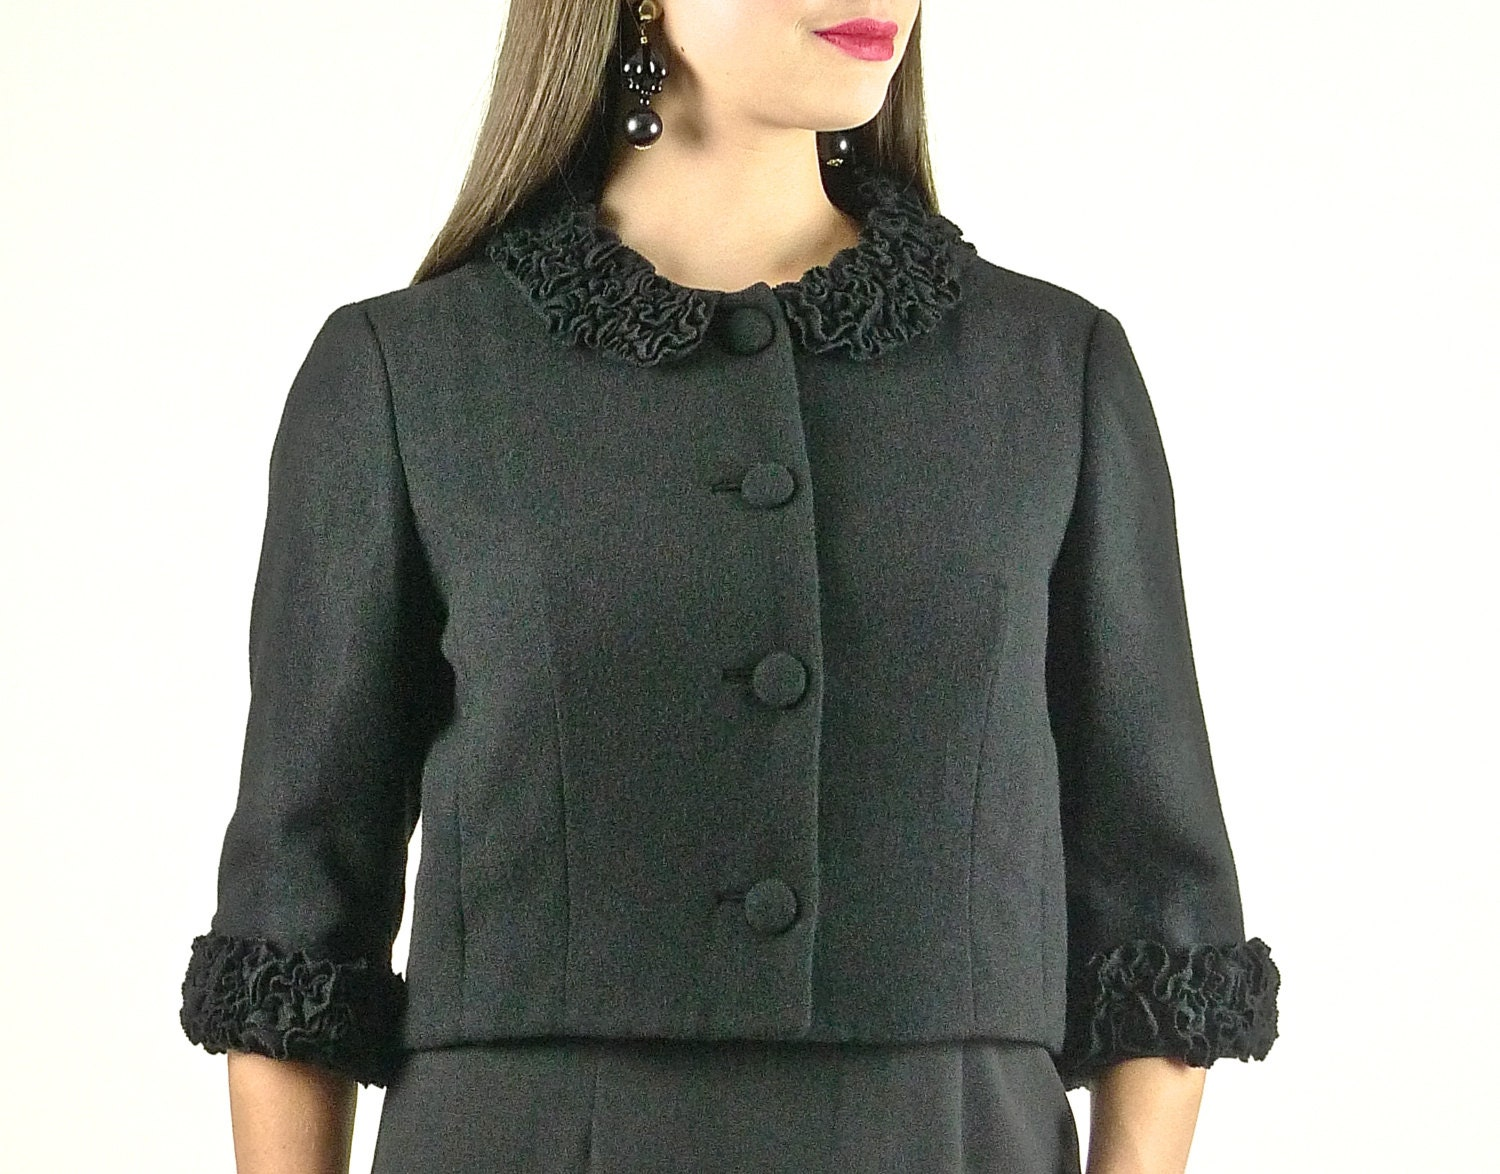 Jackie O Black Cropped 50s Jacket with Ruffled Collar and ...